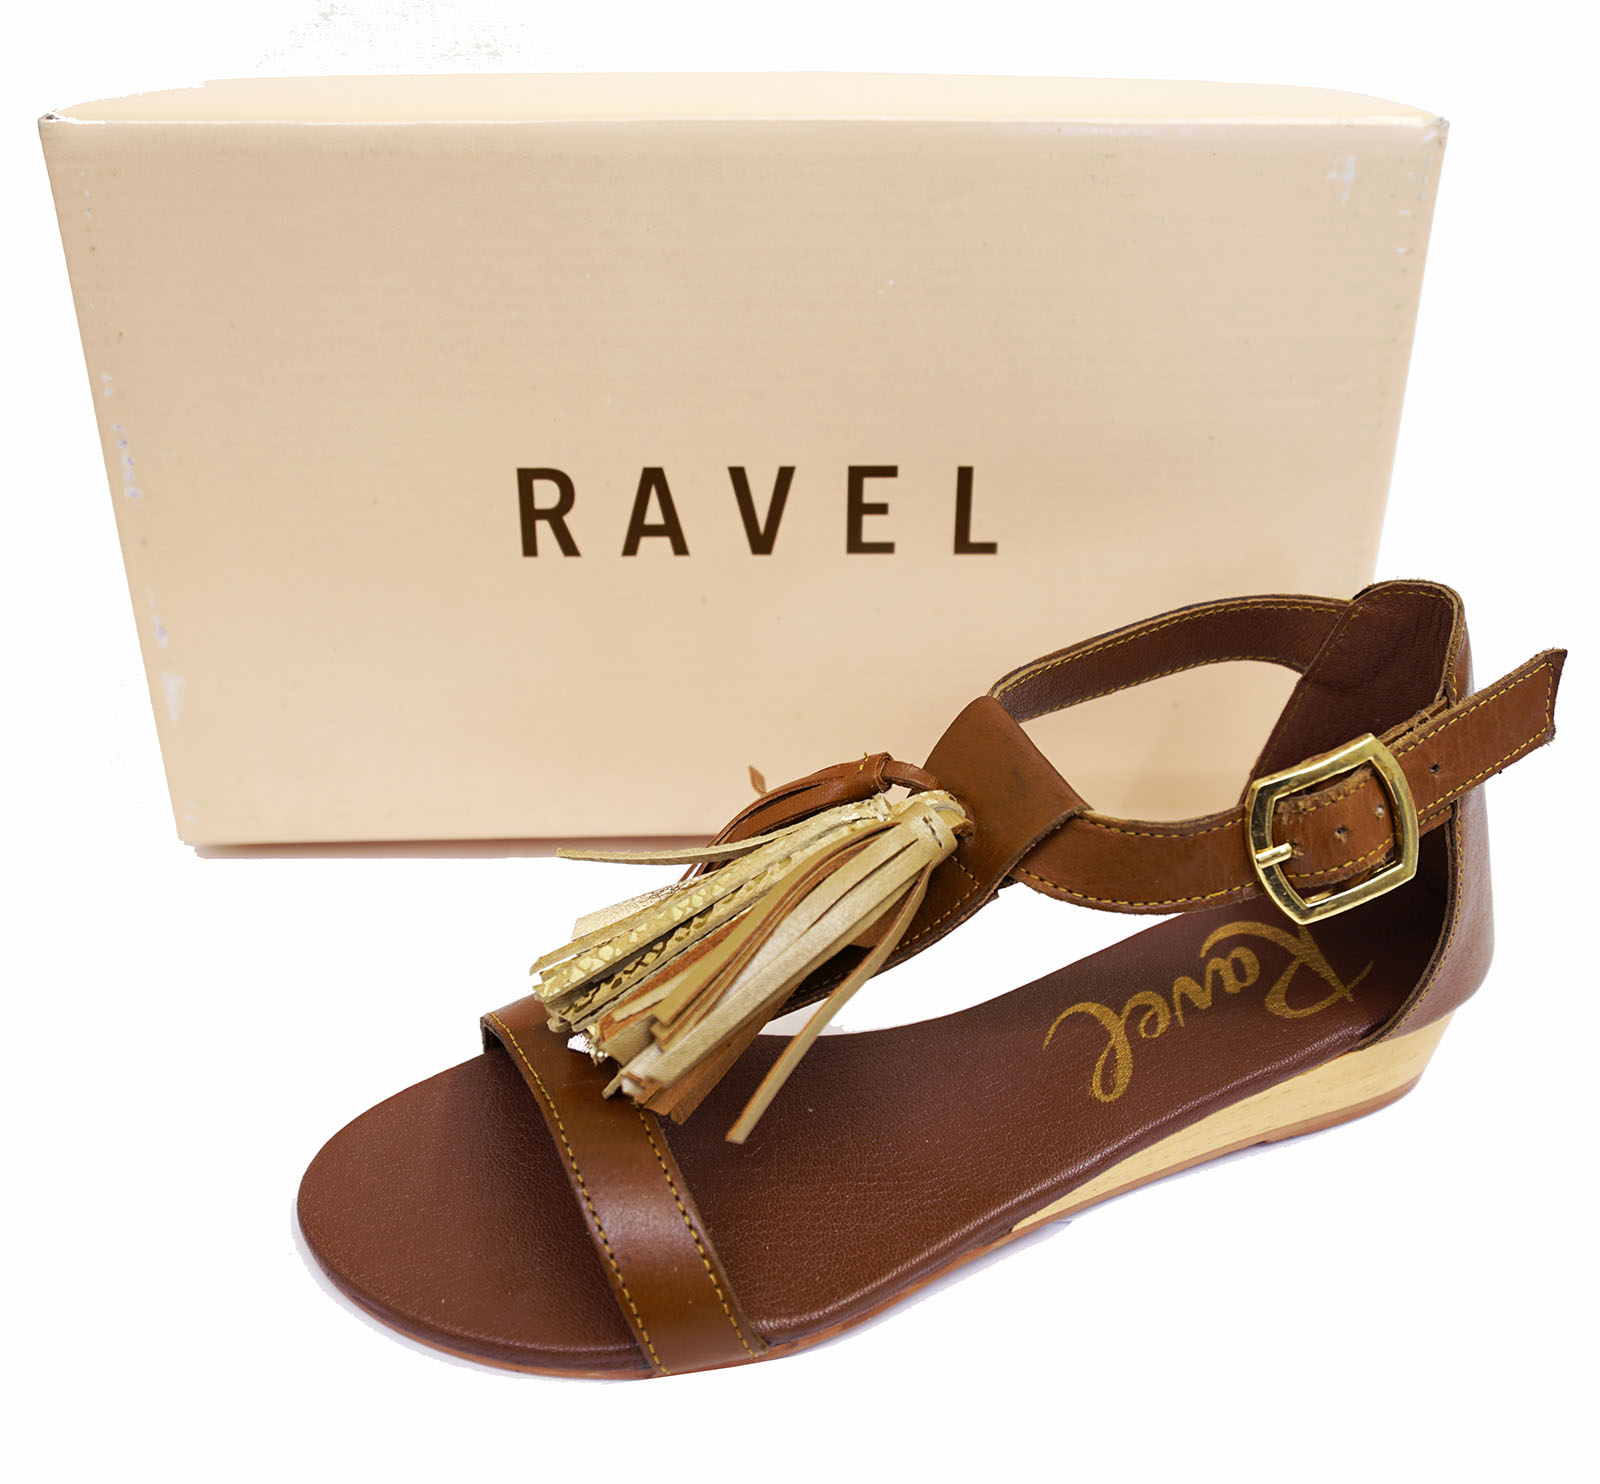 LADIES-RAVEL-ASTORIA-FLAT-LEATHER-TAN-SANDALS-SLIP-ON-T-BAR-STRAPPY-SHOES-UK-3-8 thumbnail 7